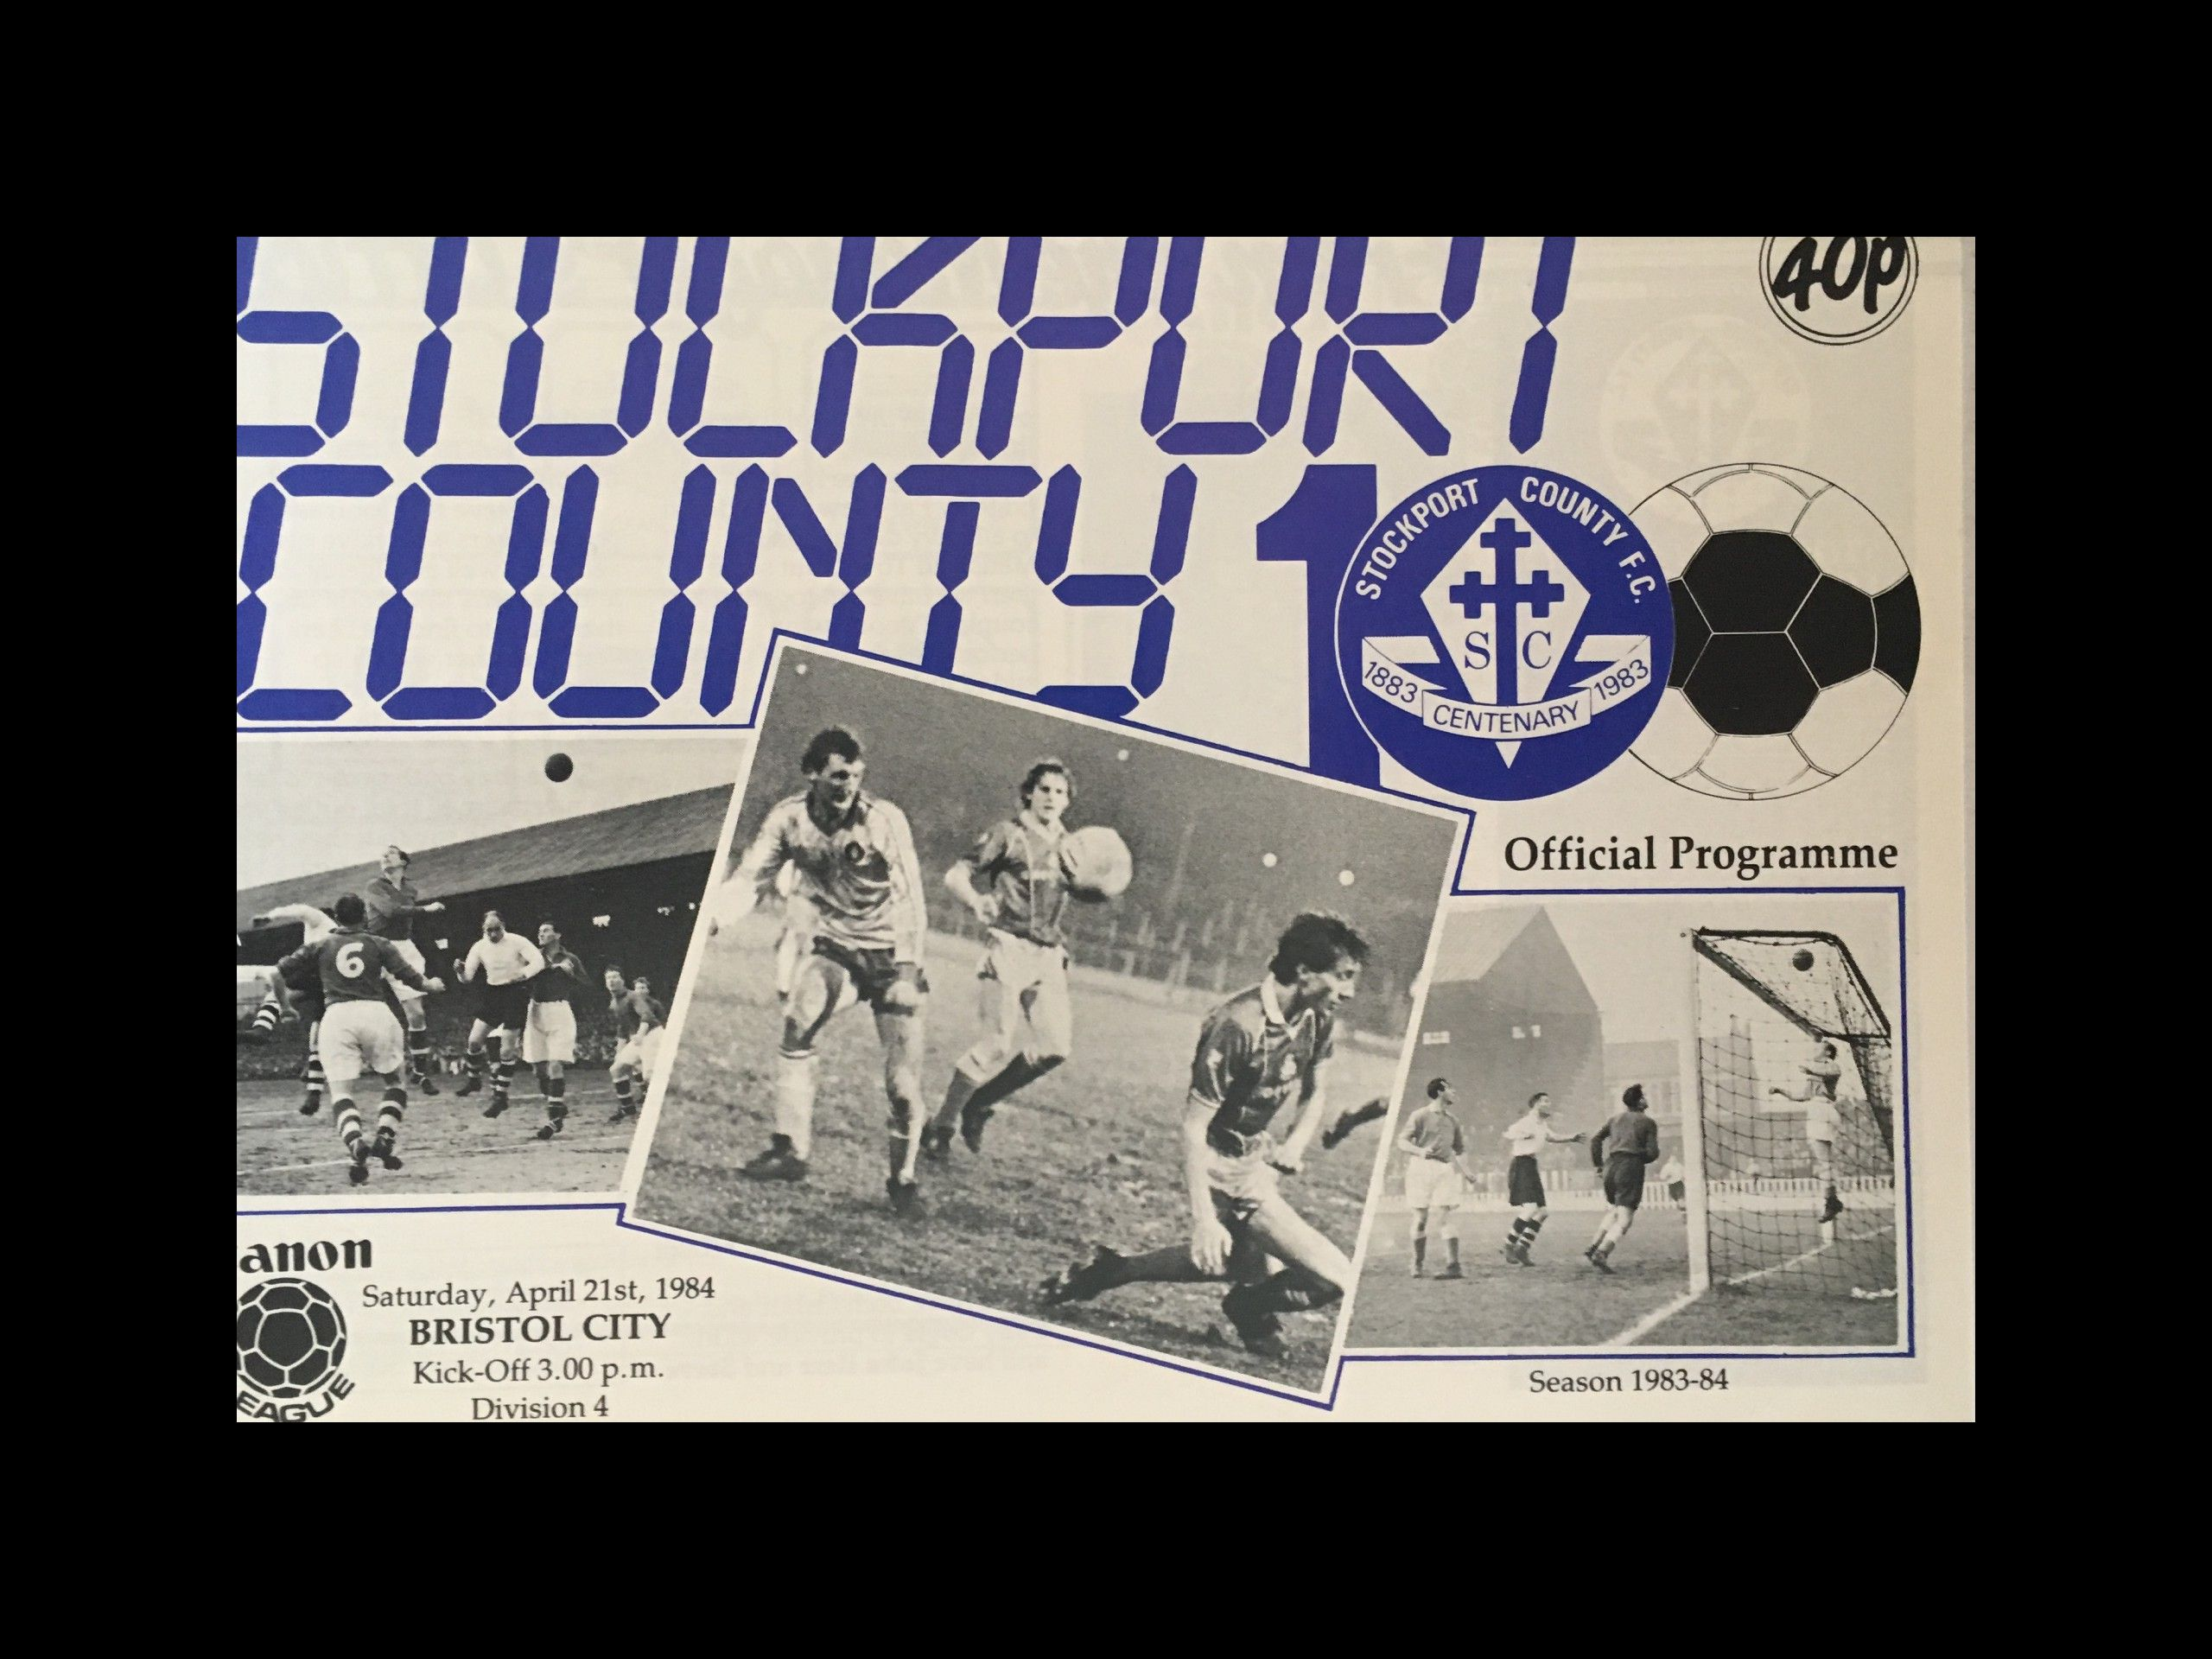 Stockport County v Bristol City 21-04-84 Programme